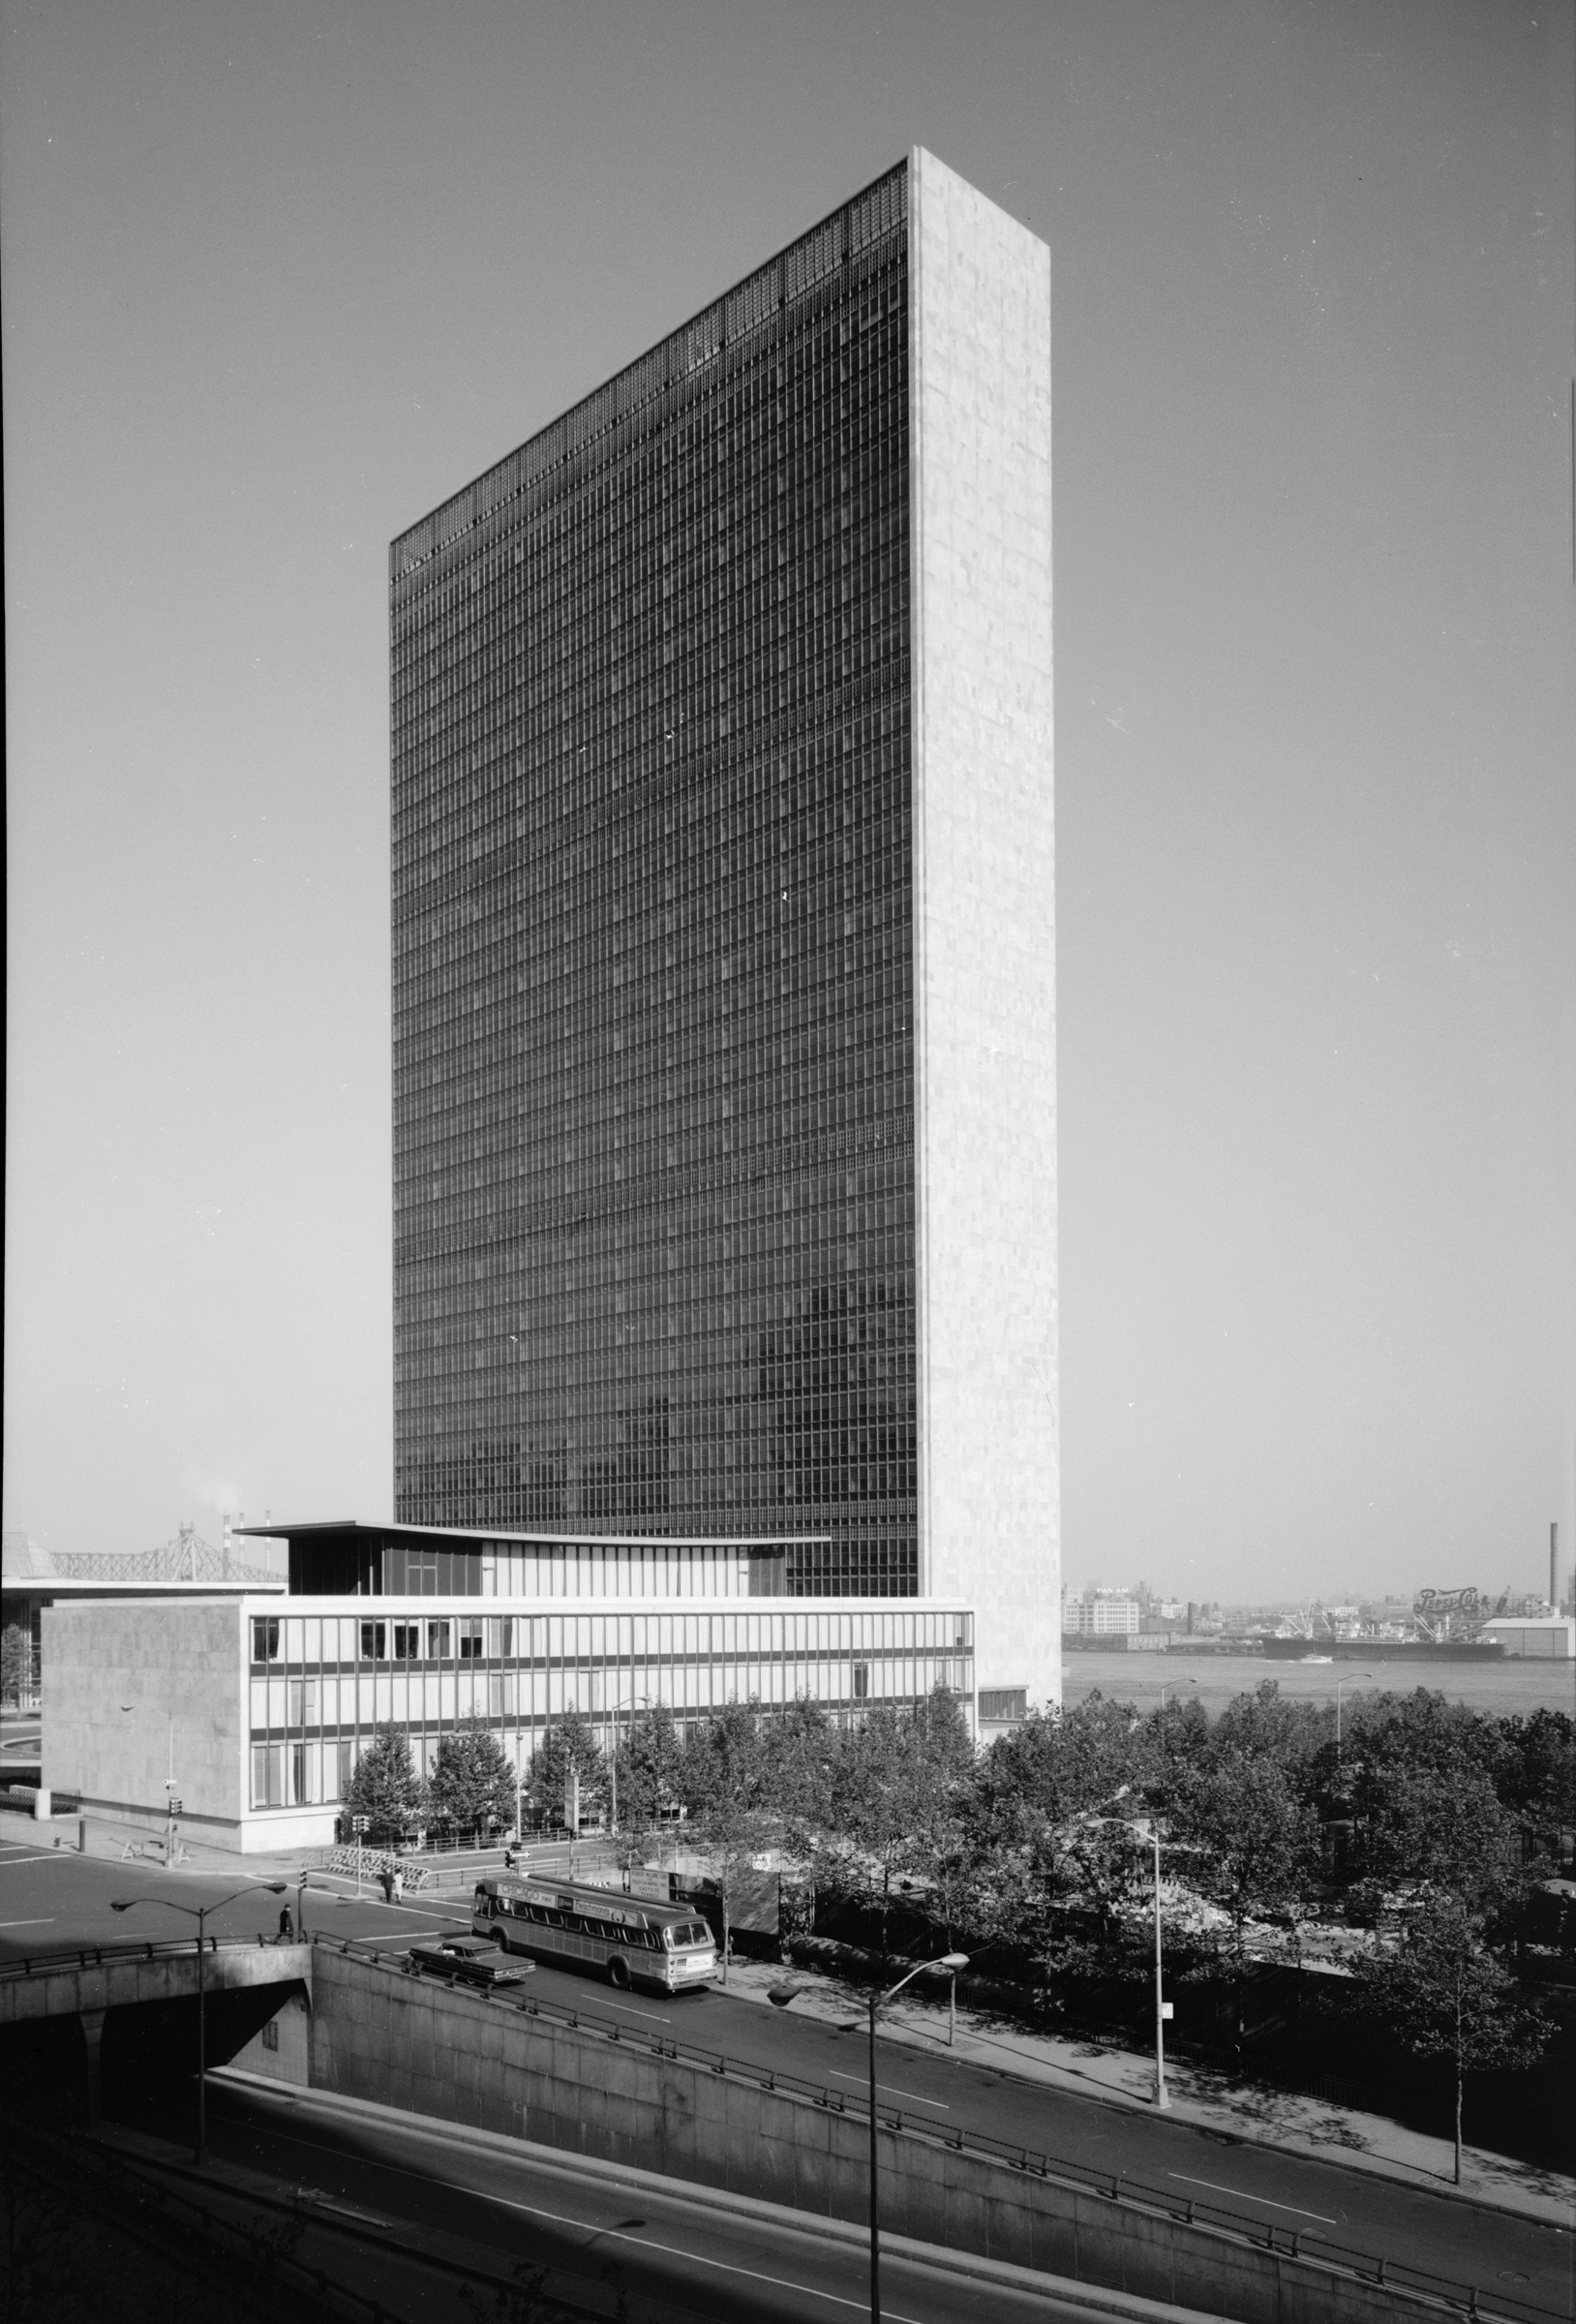 United Nations Headquarters. Photo from the Historic American Buildings Survey (HABS) and the Historic American Engineering Record (HAER) collections — U.S. National Park Service program.